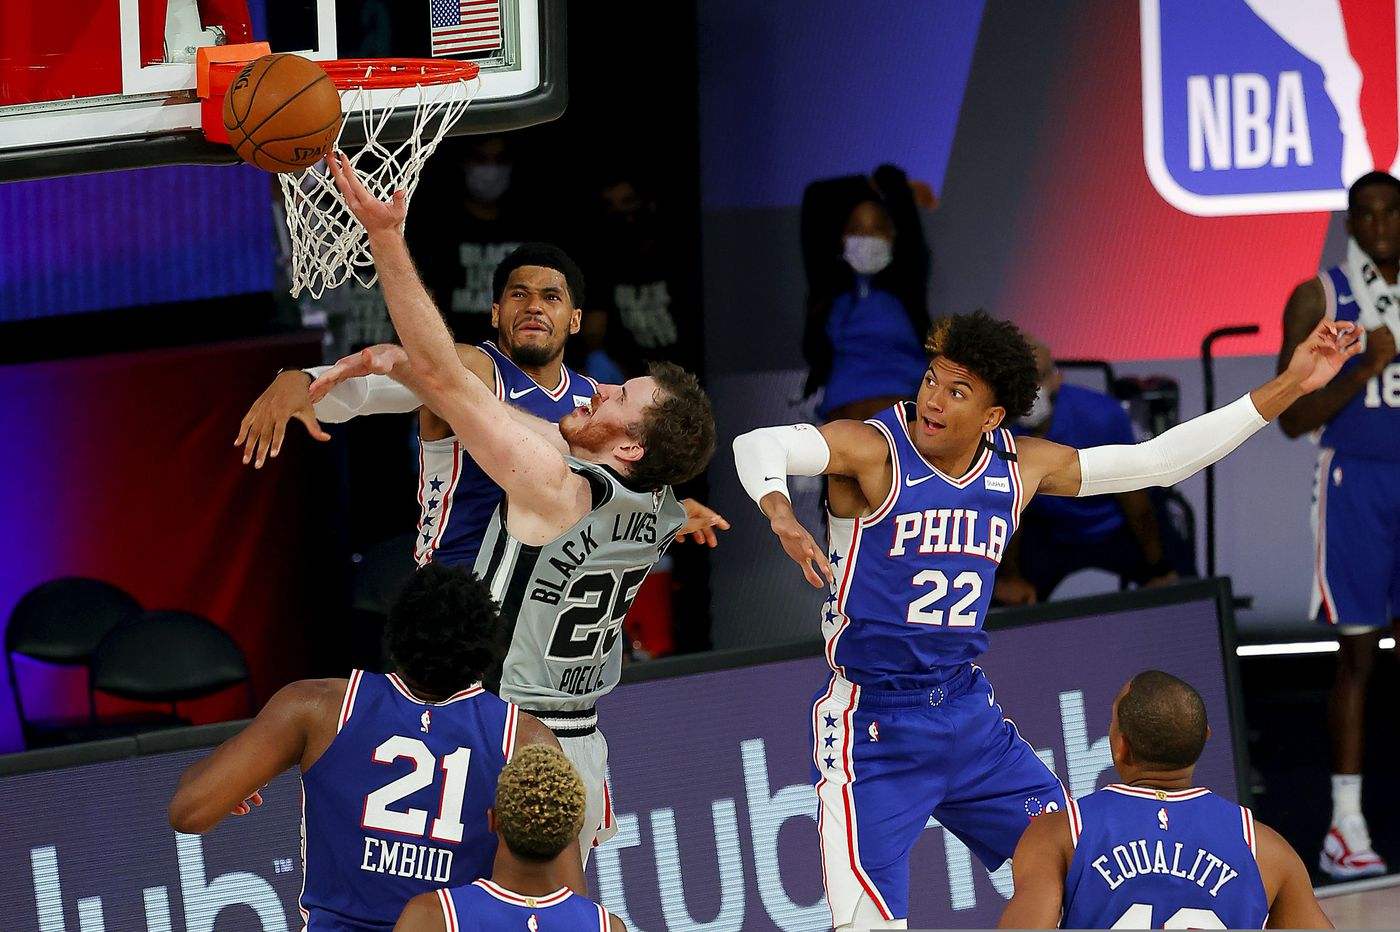 Sixers podcast: Early exit is a reality unless solid adjustments are made